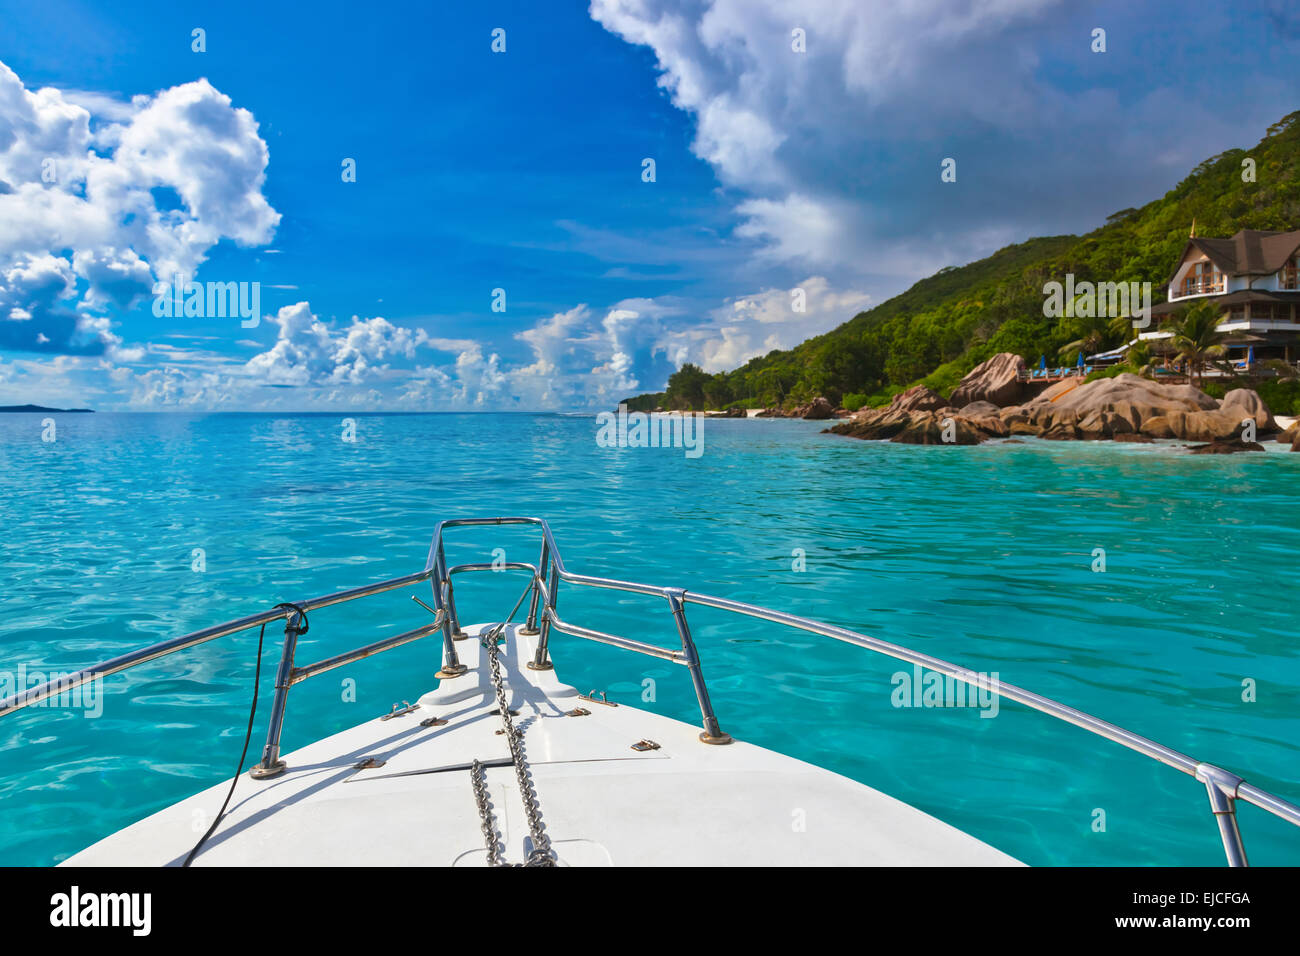 Tropical island and boat on Seychelles - Stock Image